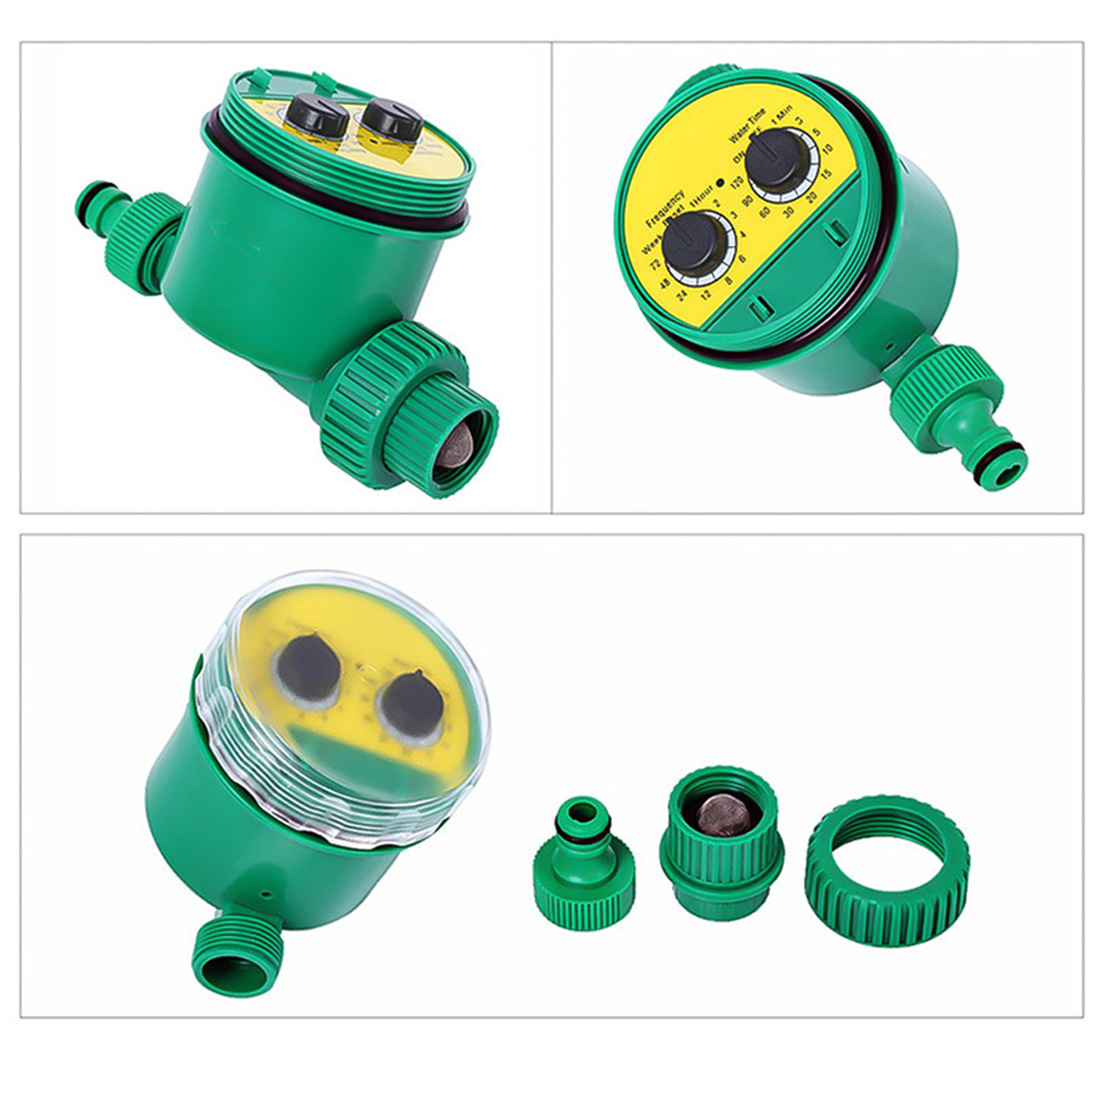 Купить с кэшбэком Automatic Watering Timer Irrigation Timer Ball Valve Electronic Irrigation Controller Water Timer For Garden Watering System